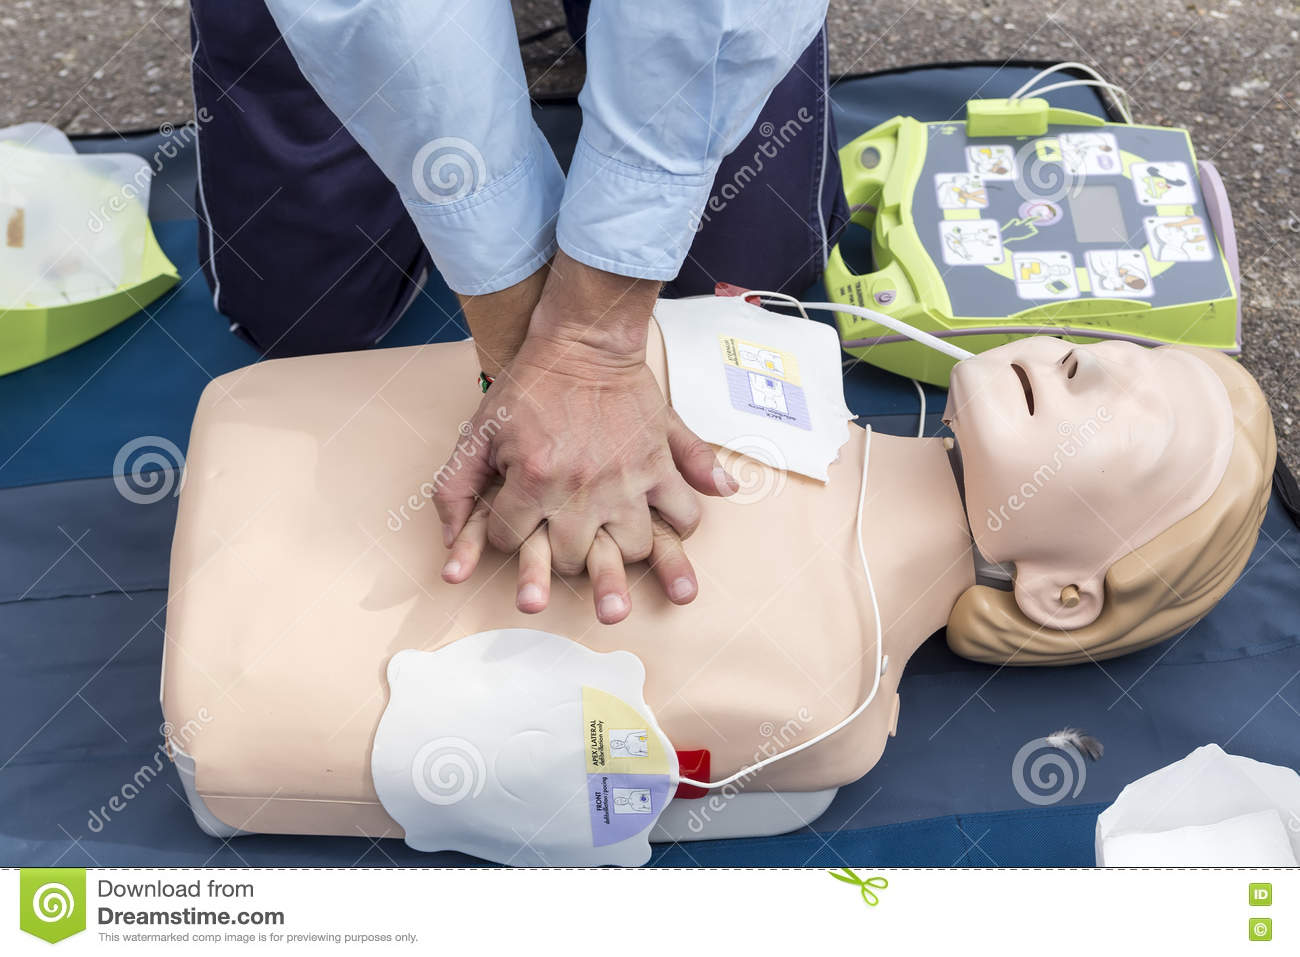 The Instructor Showing Cpr On Training Doll Free First Aid Stock